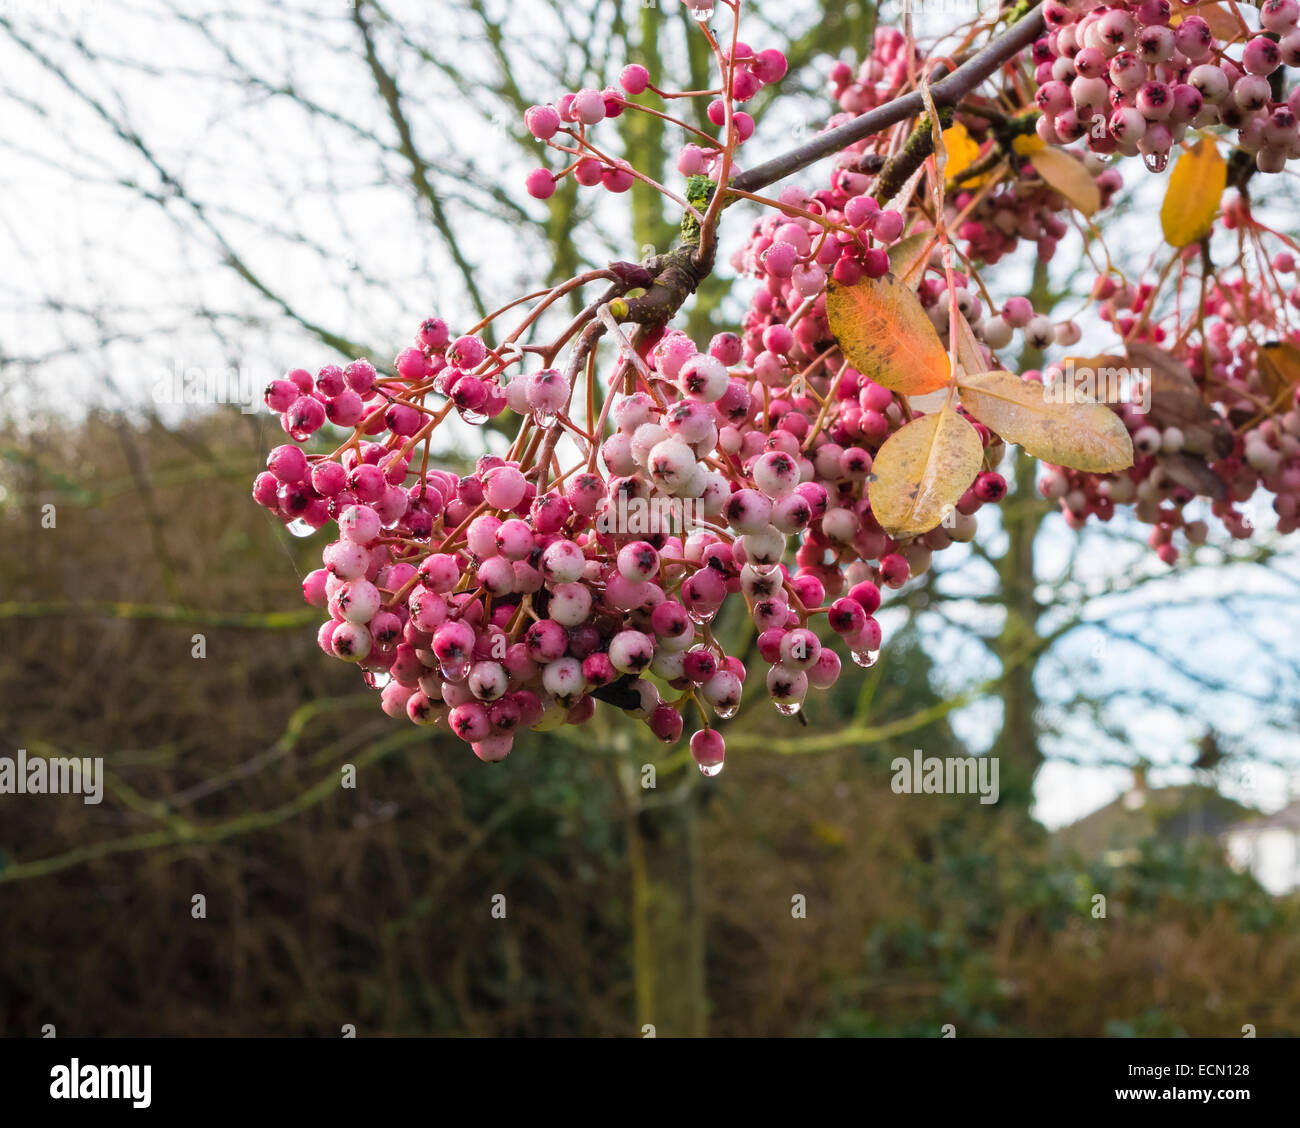 pink-berries-in-autumn-ECN128.jpg